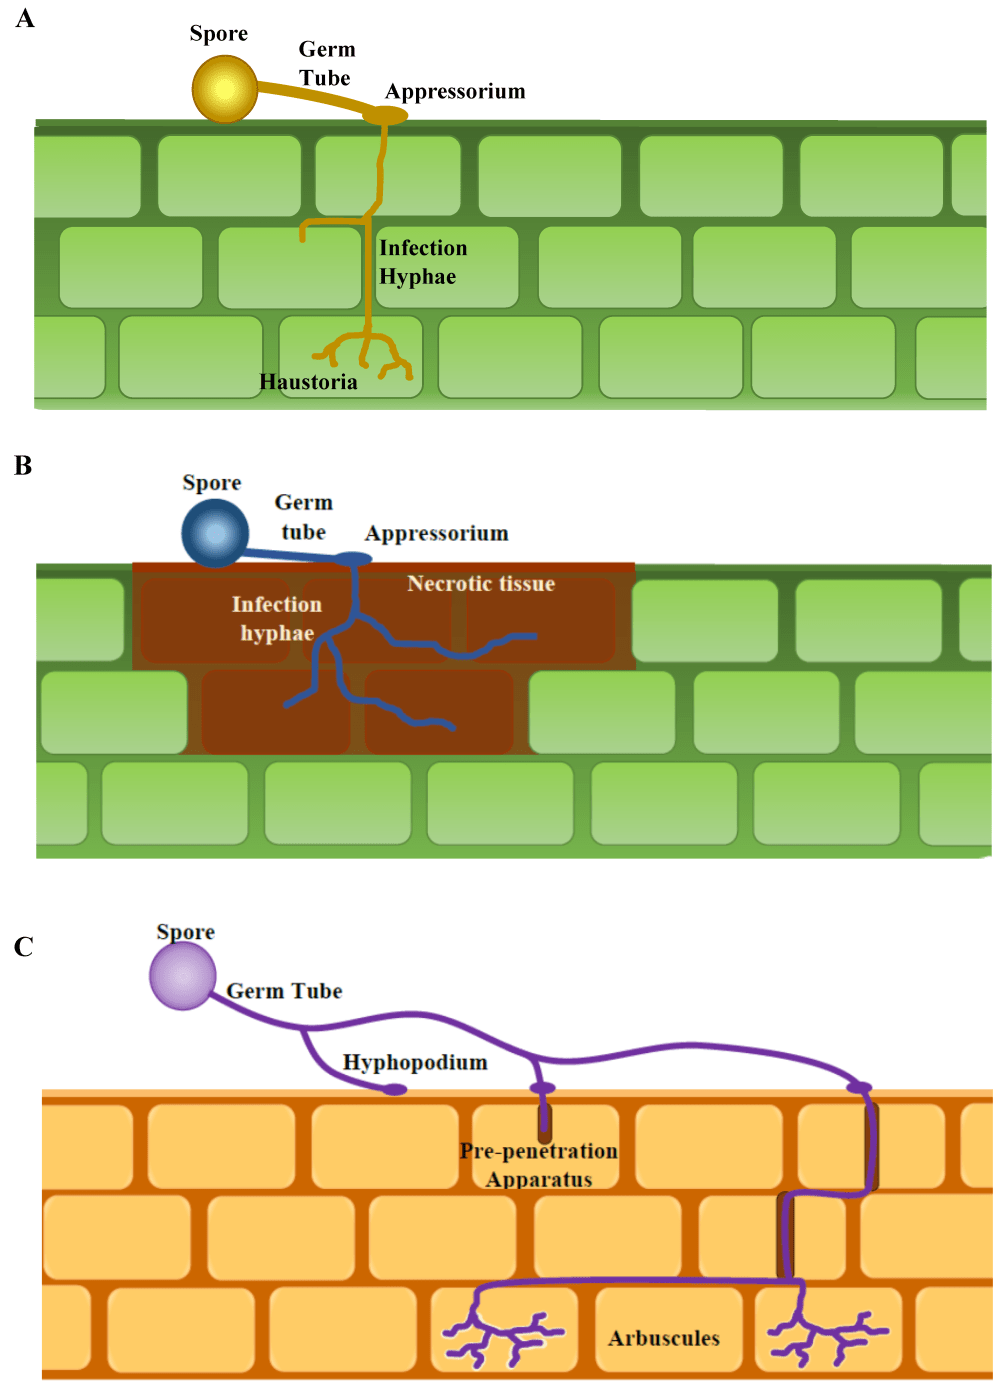 medium resolution of figure 1 generalized diagram of infection